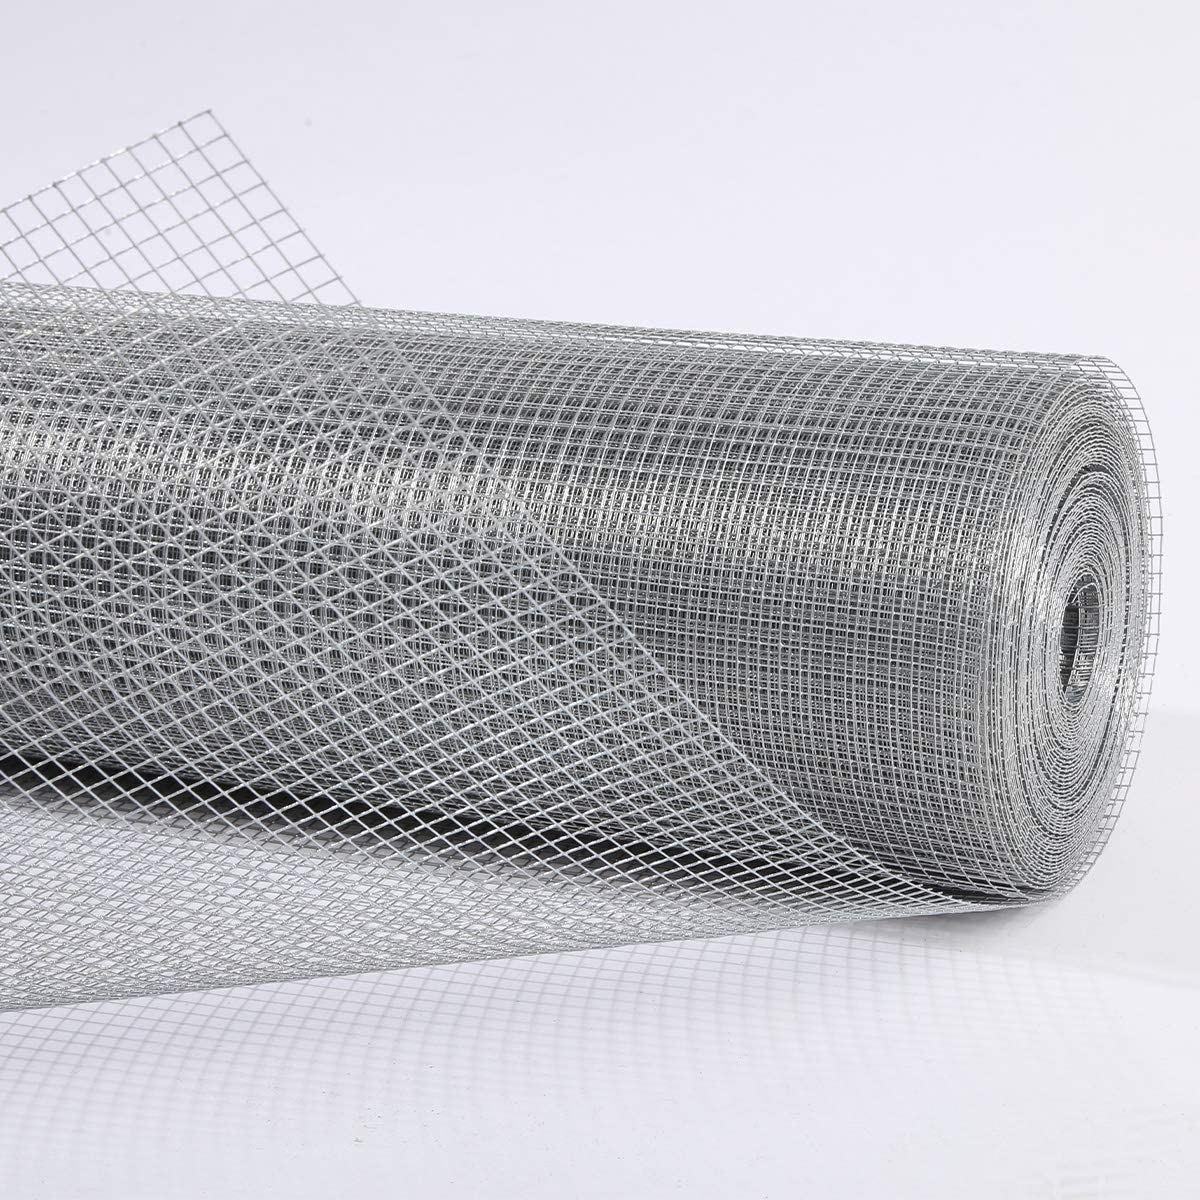 Nueve Deer Hardware Cloth 36inx100ft 1/4 Inch Opening 23 Gauge Galvanized After Welding, Chicken Coops,Garden Plant Supports,Tree Guards, Animal Cage